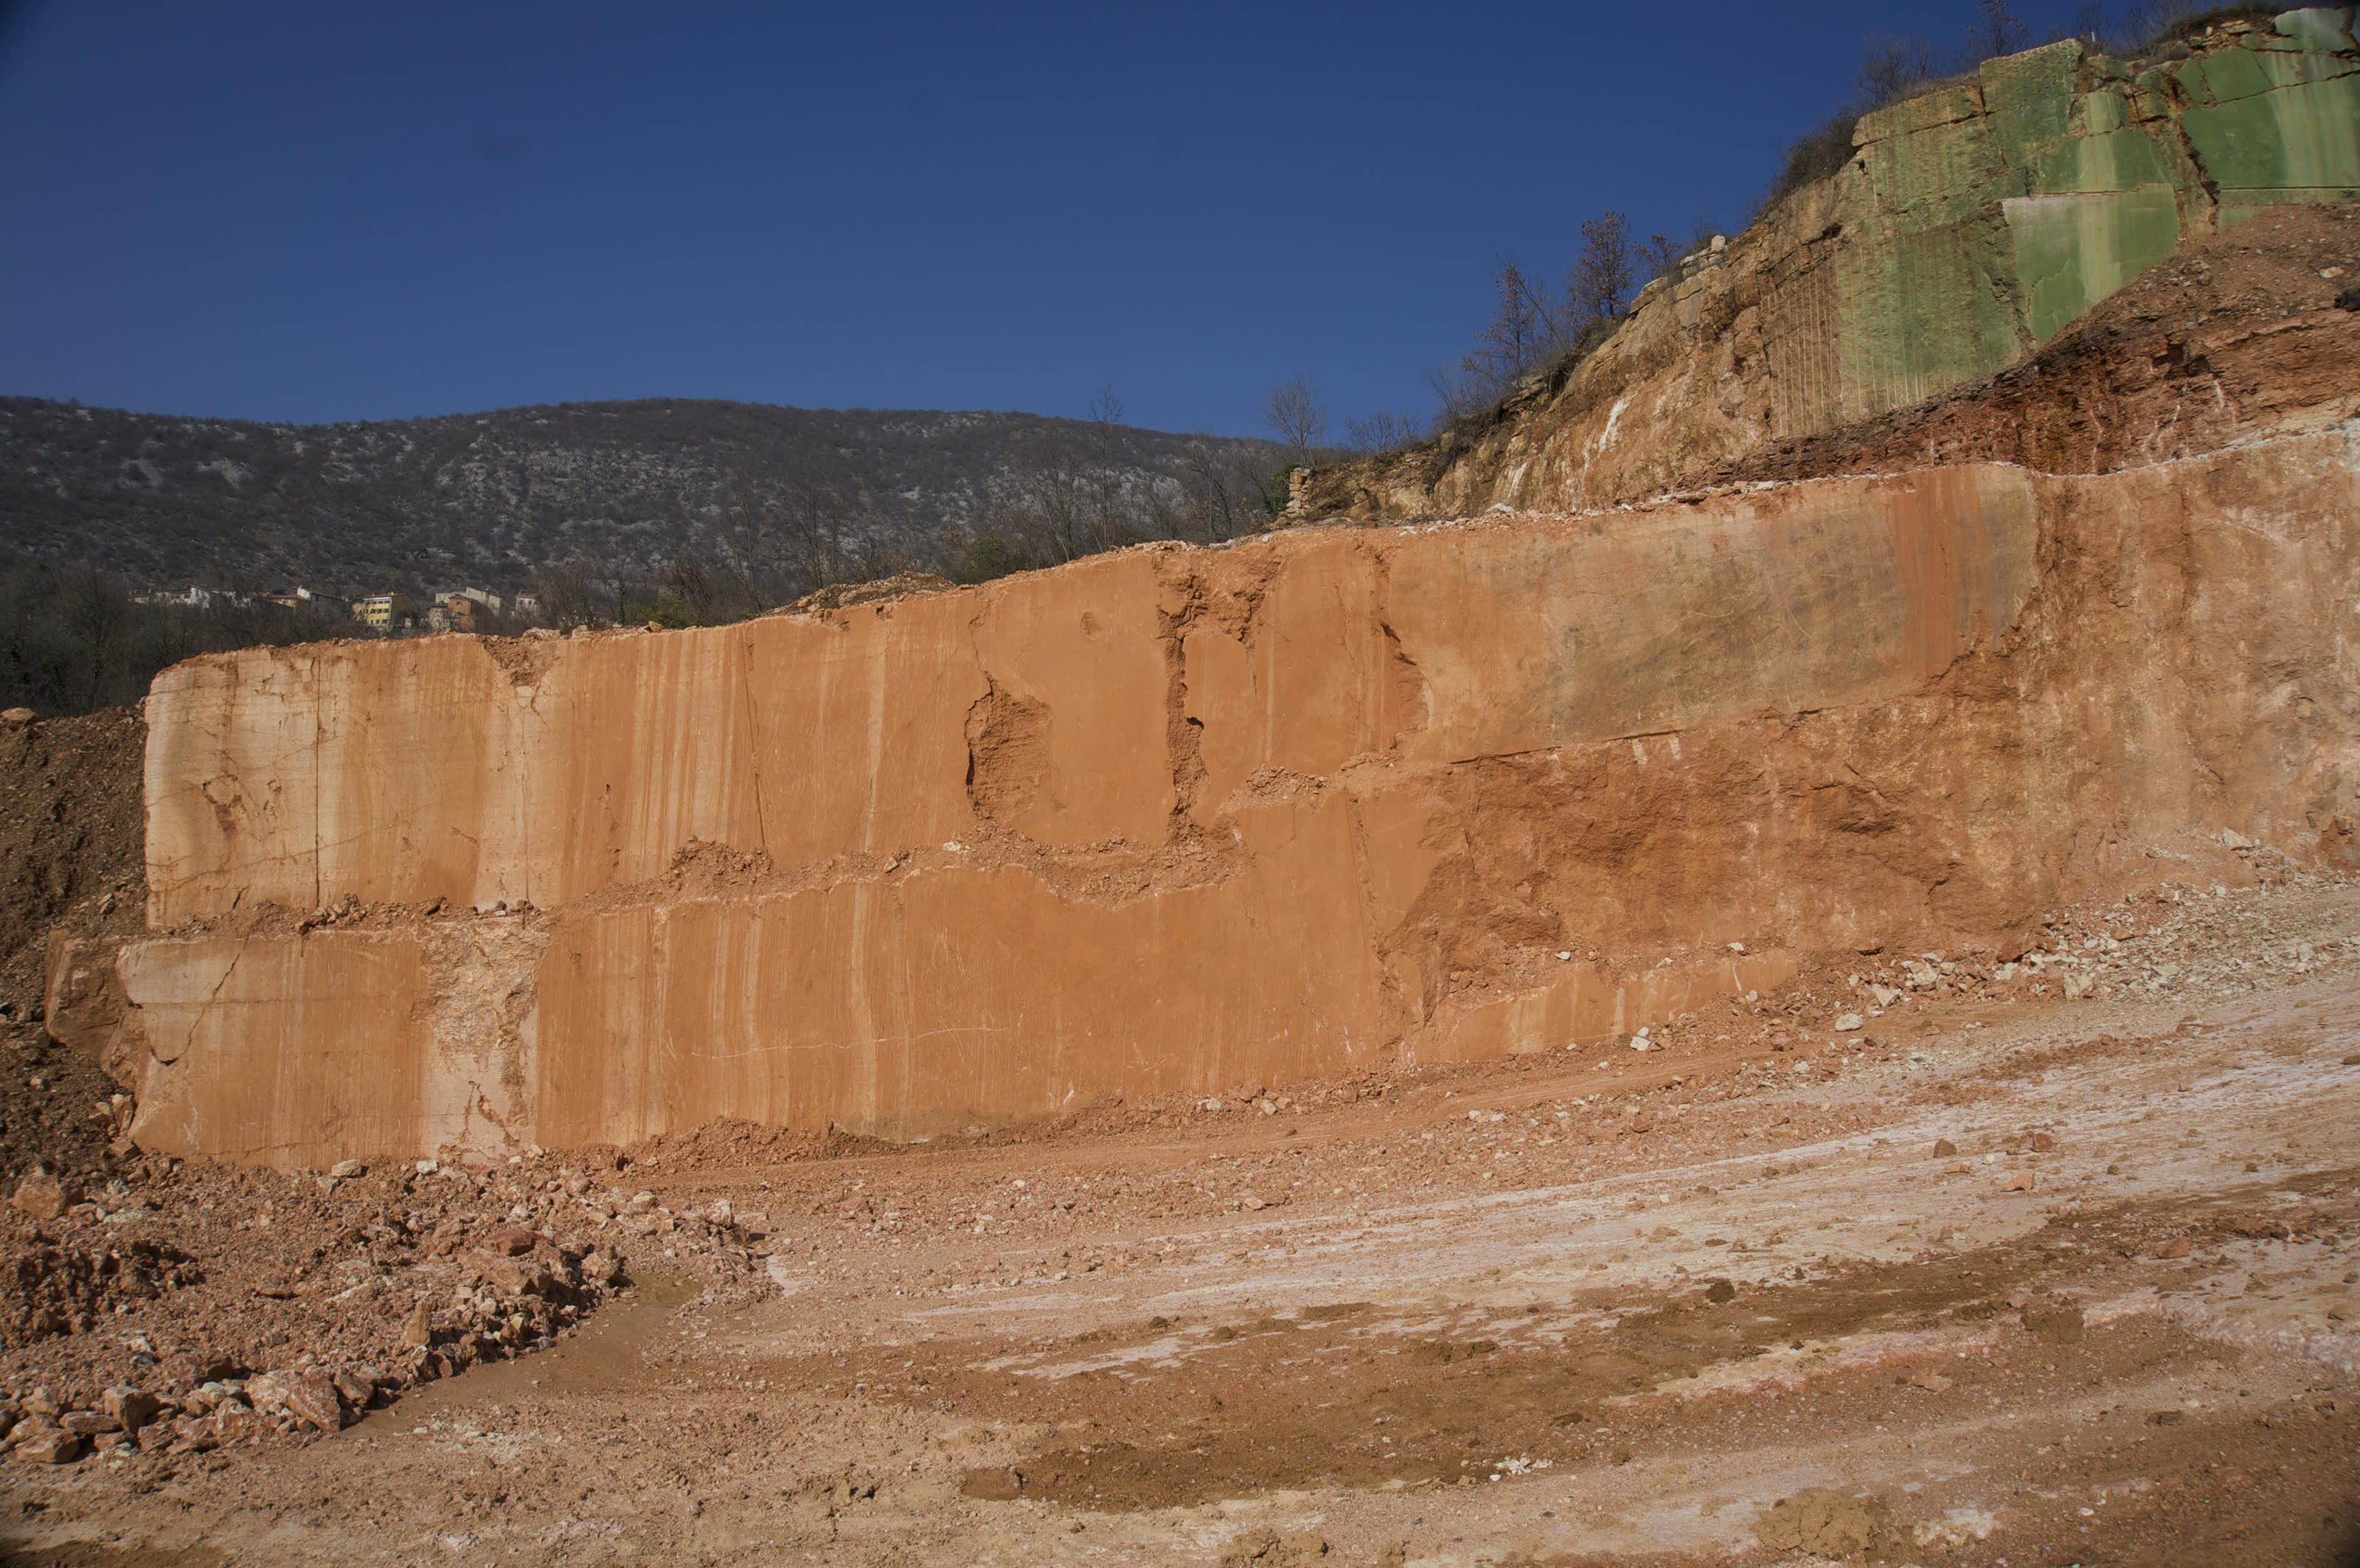 Rosso Sant'Ambrogio dimension quarry where we source the Rosso Verona aggregates.